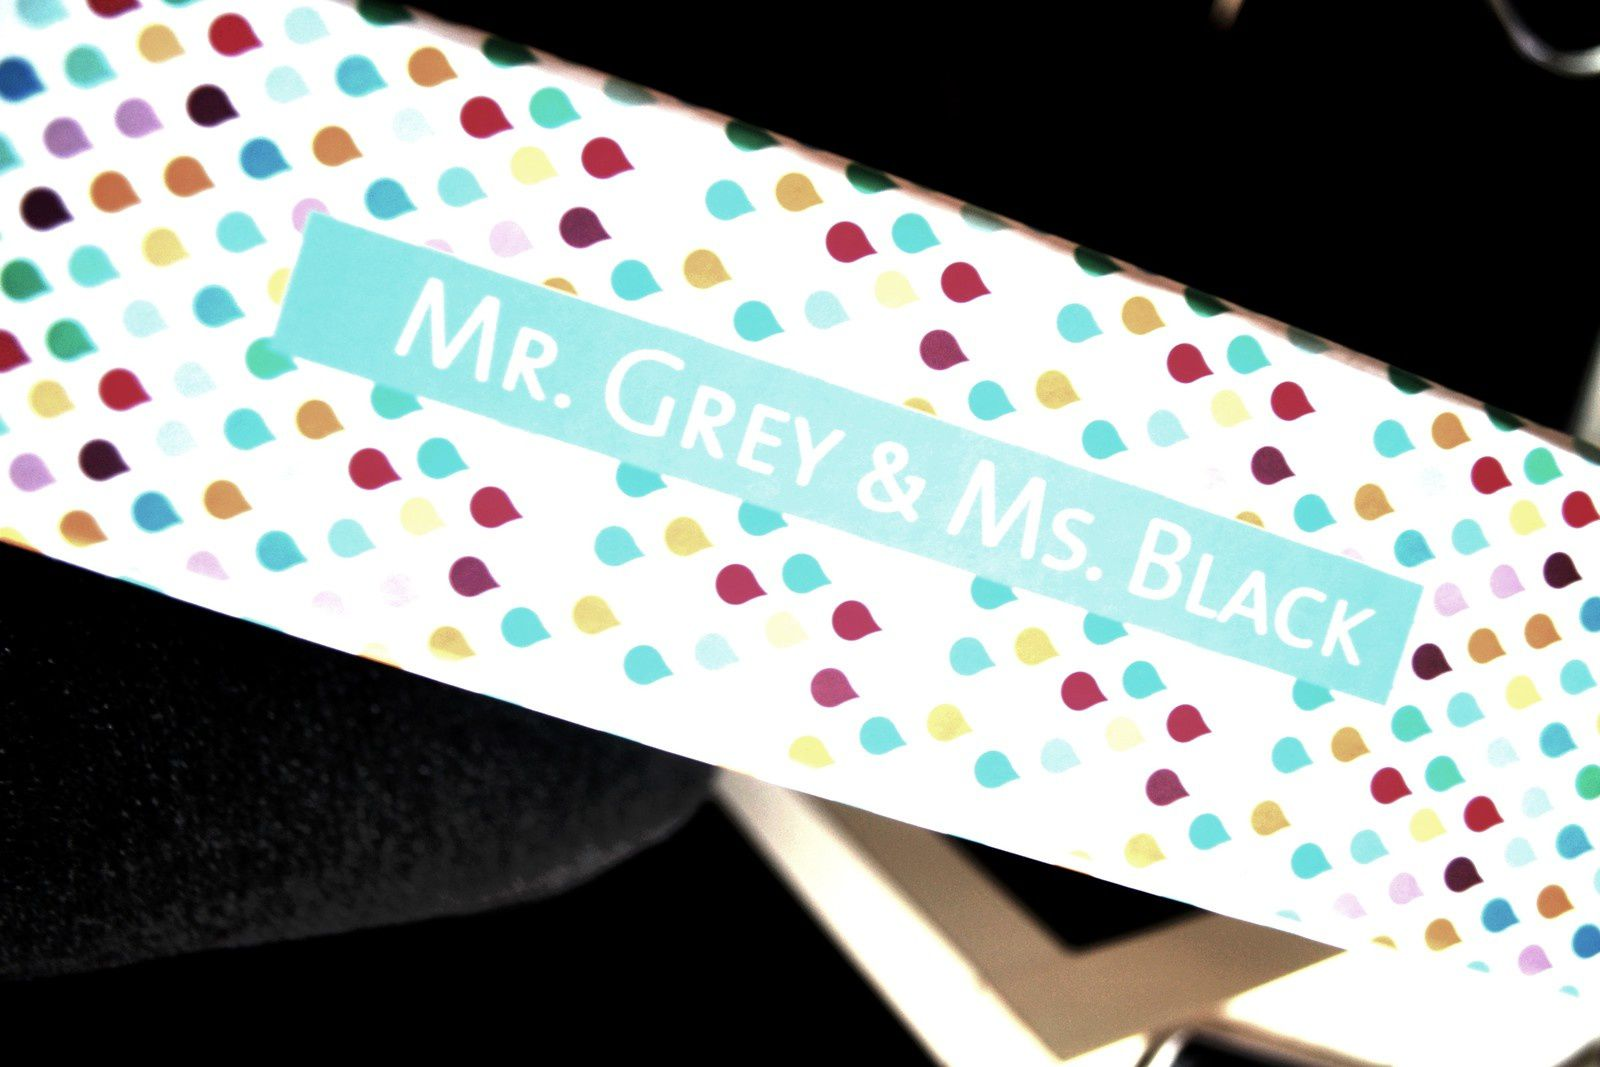 Mr. Grey &amp&#x3B; Ms. Black !